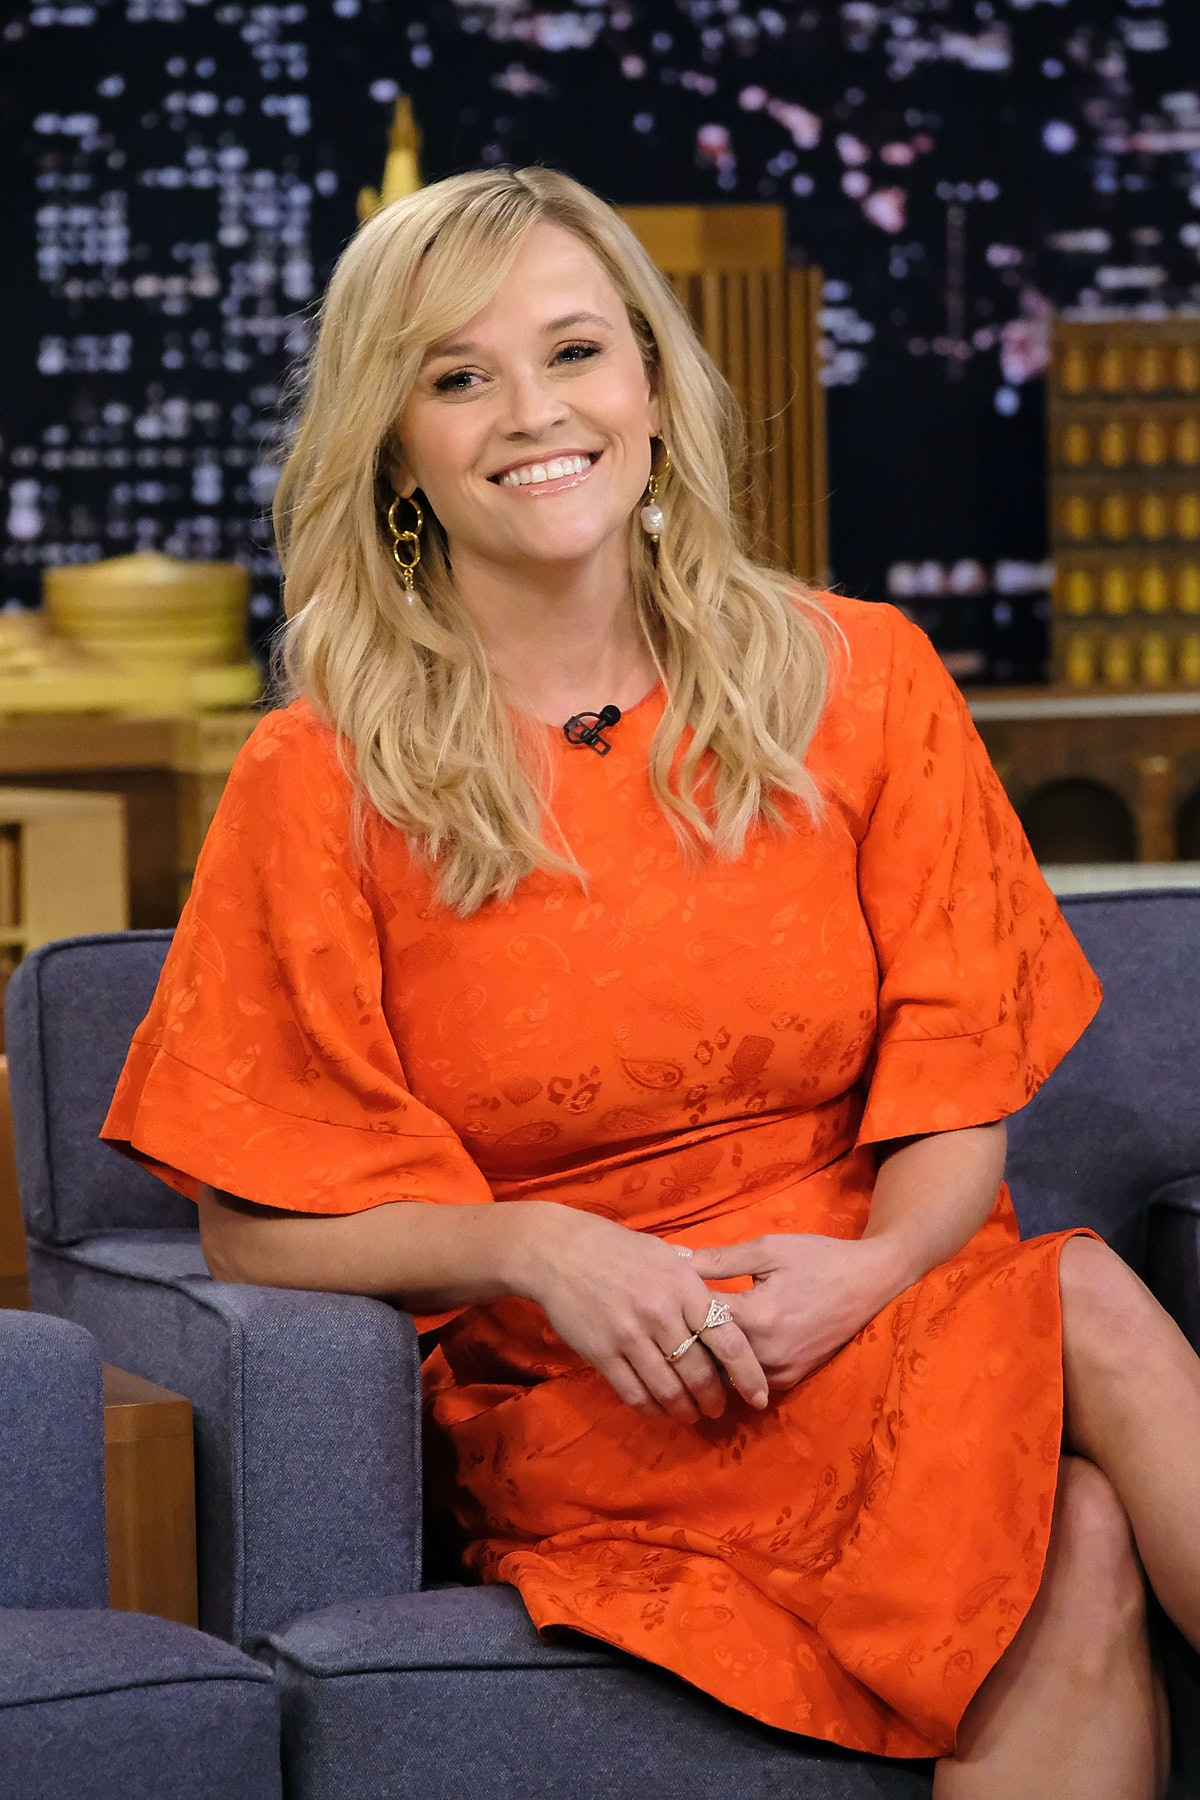 Reese Witherspoon Danced At A Harlem Globetrotters Game & Charlize Theron Totally Rooted For Her — VIDEO